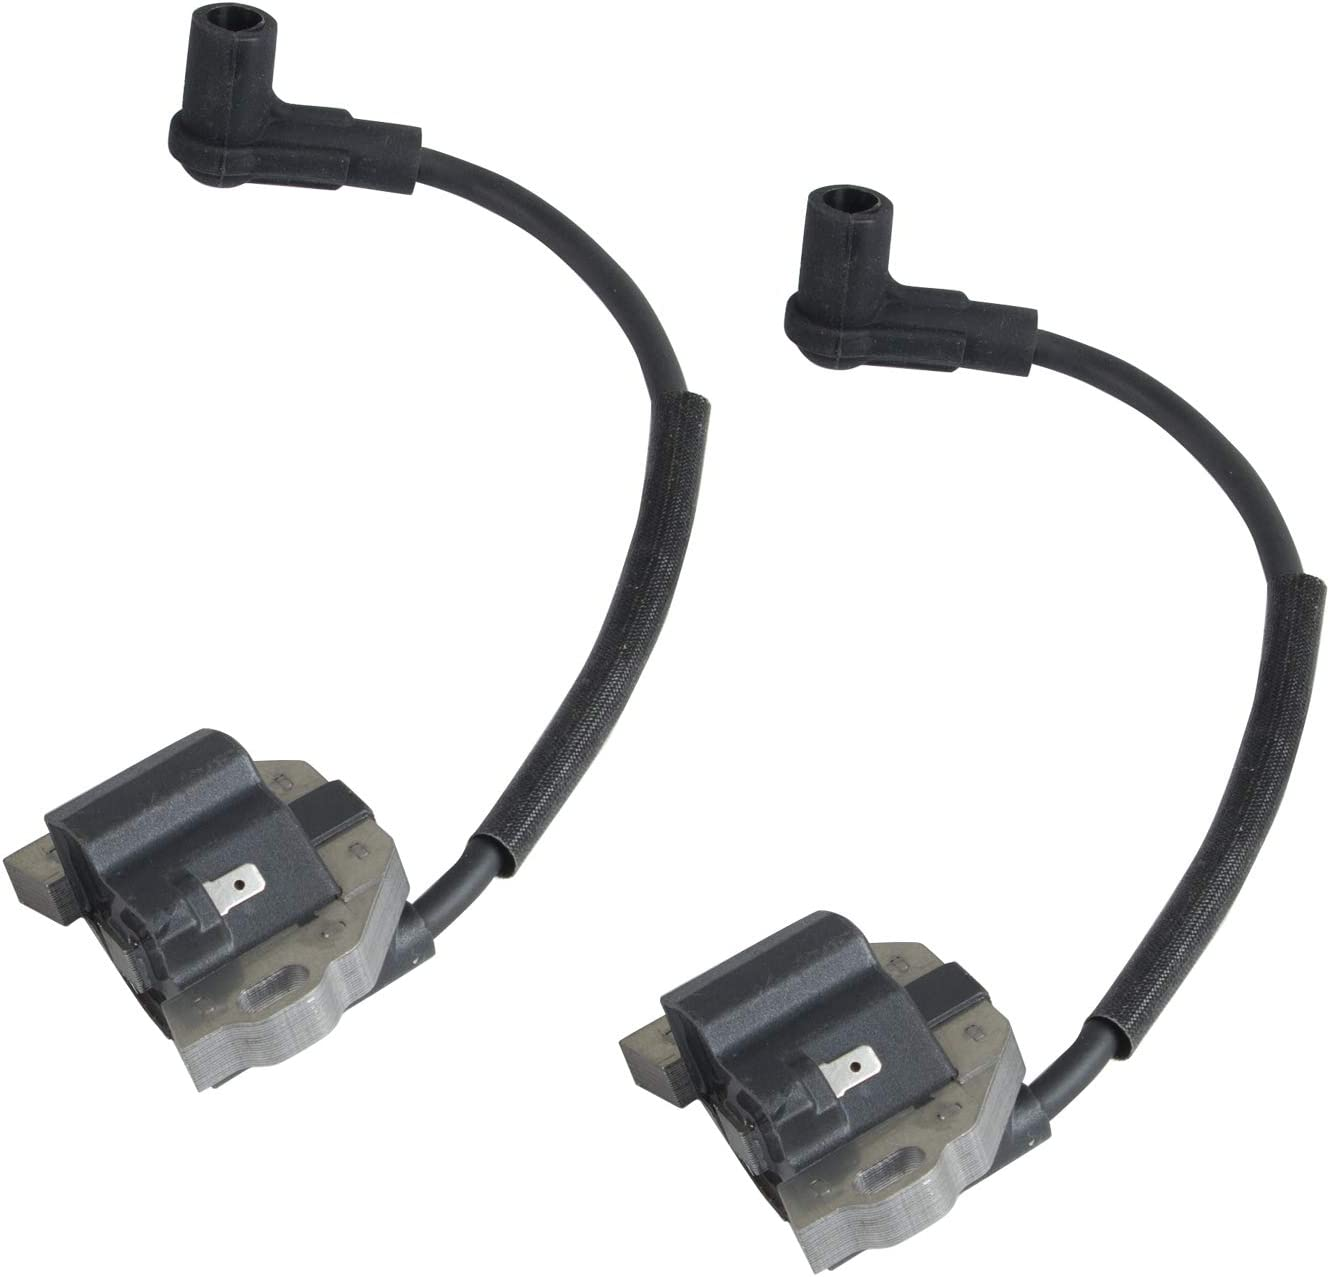 New 21171-0711 Ignition Coil Pack of 2 Compatible with Kawasaki FR FS FX Series Engines, Replaces 21171-0743